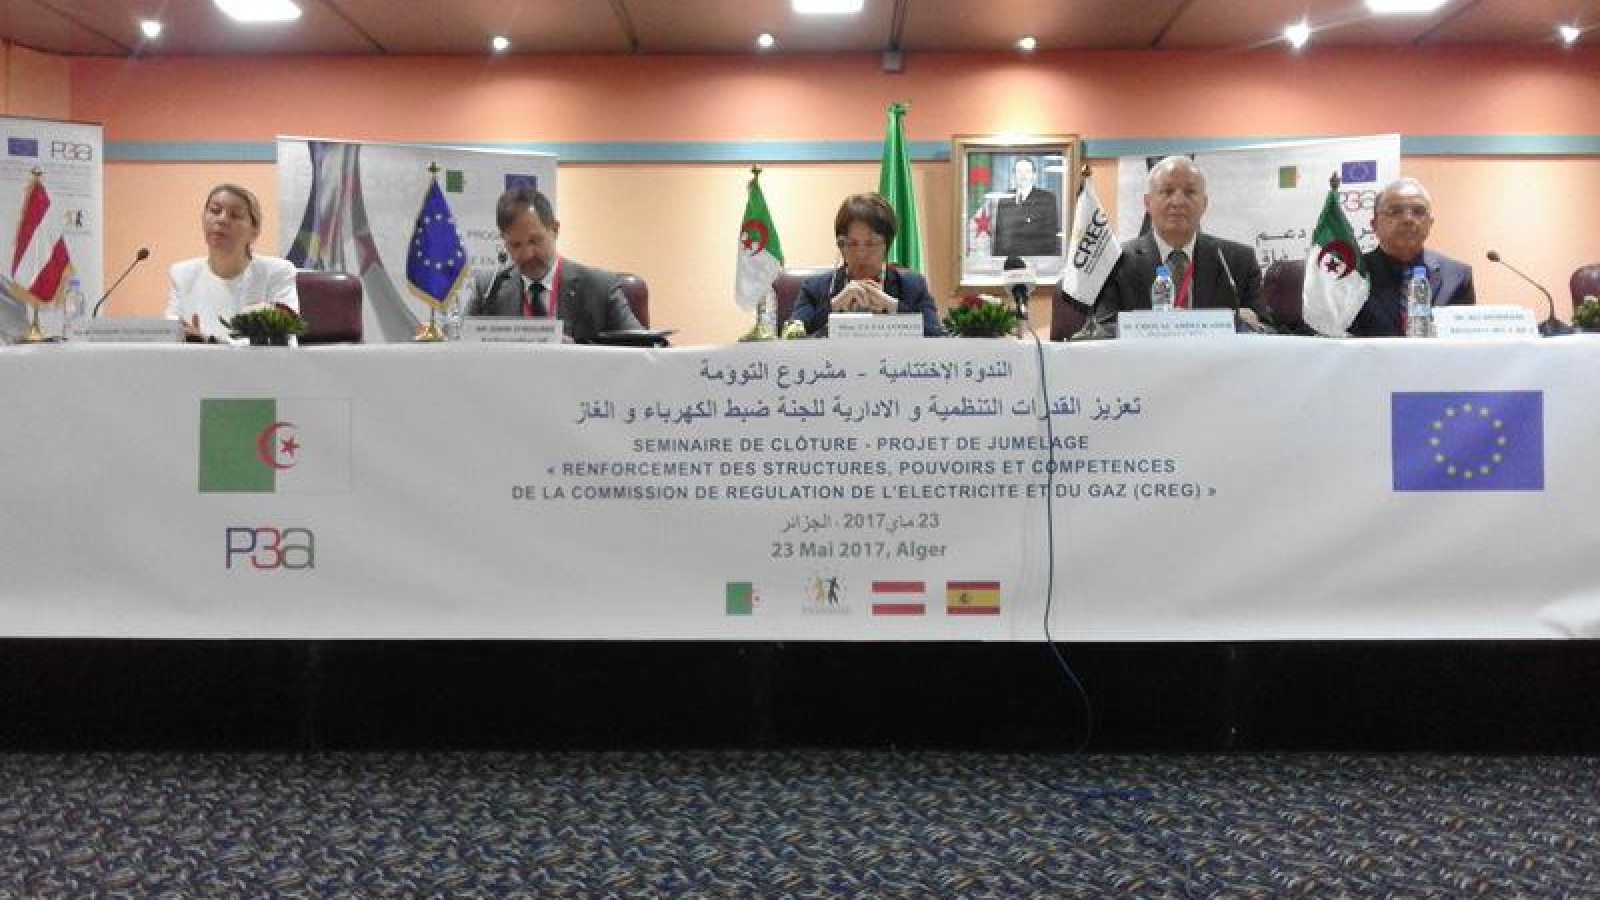 EU-Algeria twinning project on energy sector regulation